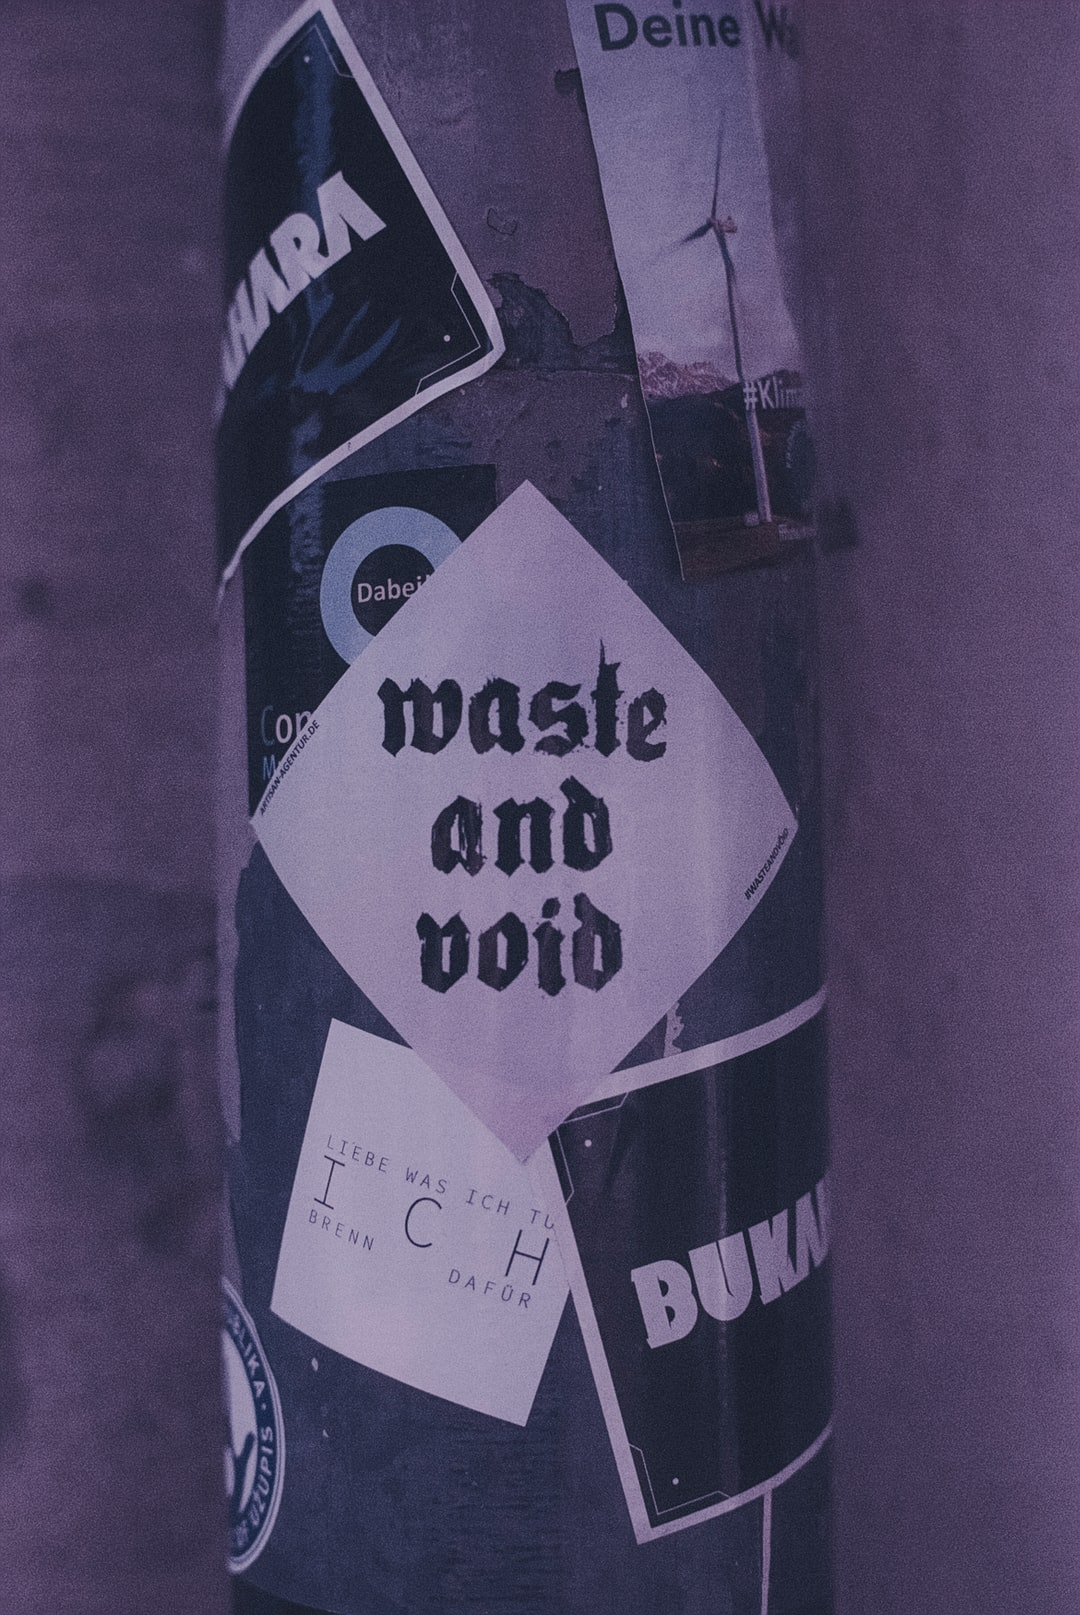 WASTE AND VOID – Urban street art sticker. Made with Leica R7 (Year: 1994) and Leica Summicron-R 2.0 35mm (Year: 1978). Analog scan via nimmfilm.de: Fuji Frontier SP-3000. Film reel: Kodak Ektarchrome E100 SW (expired 2001)